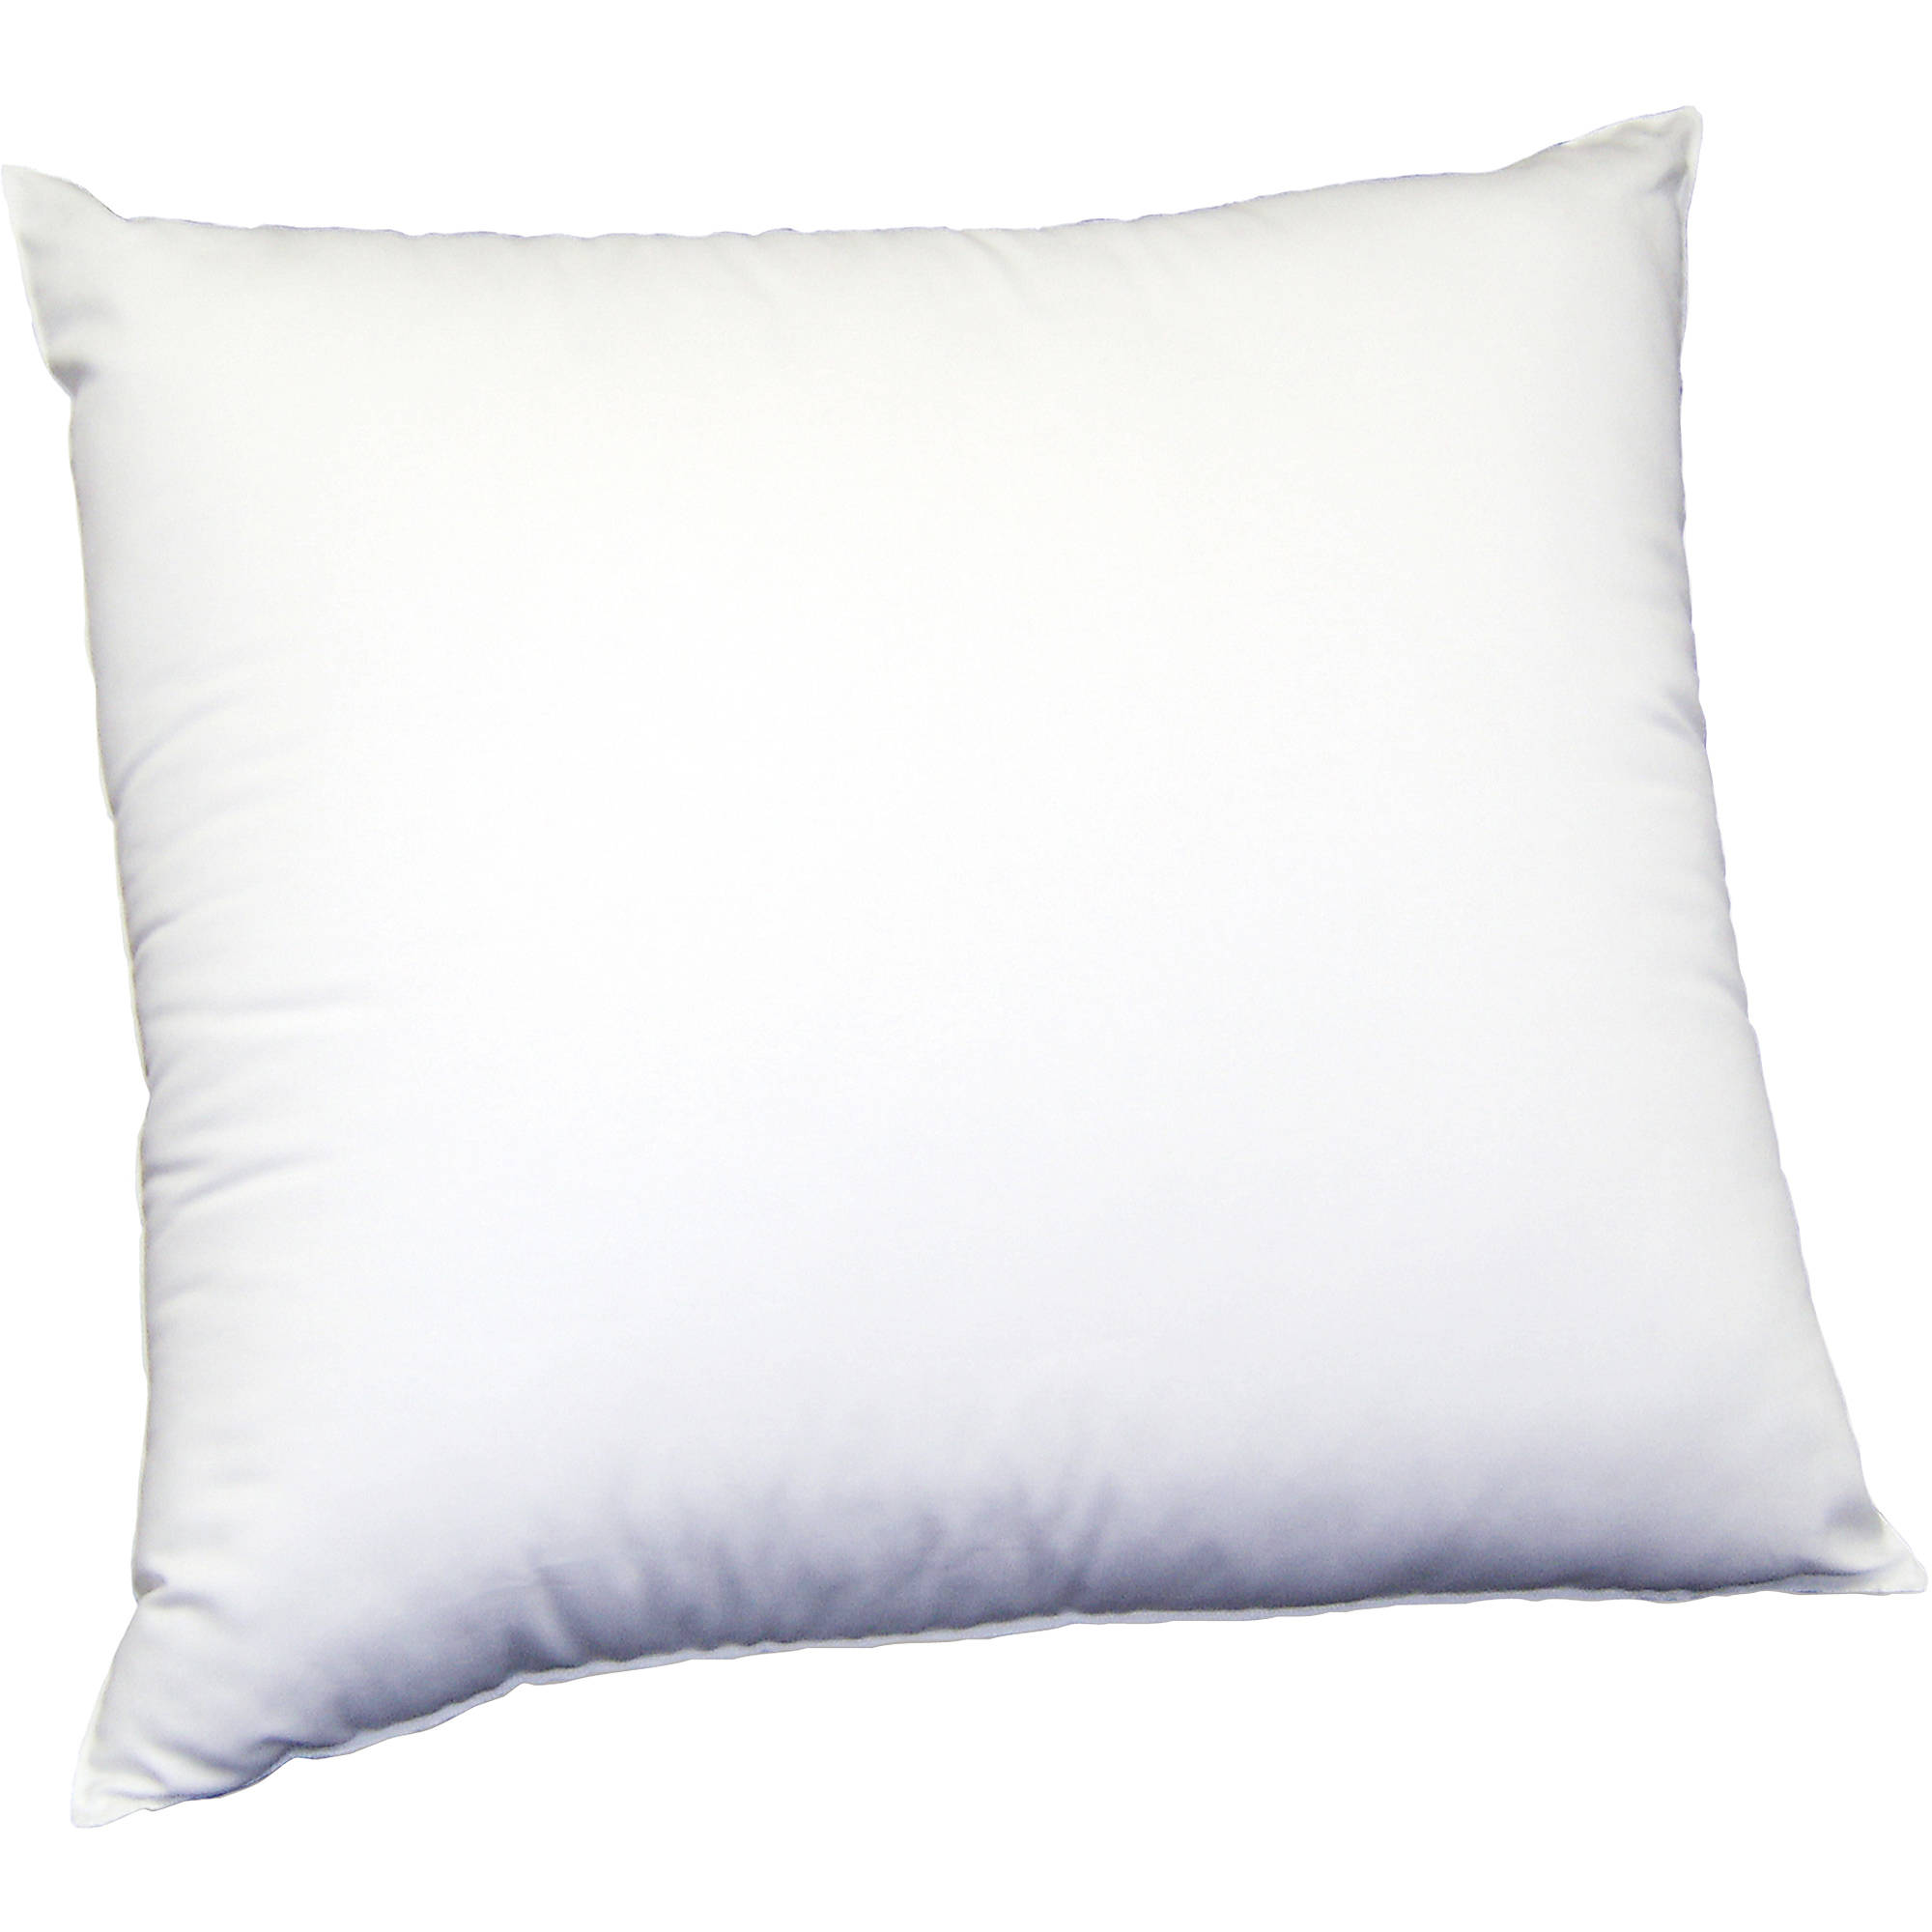 Bed rest pillow walmart - Bed Rest Pillow Walmart 48